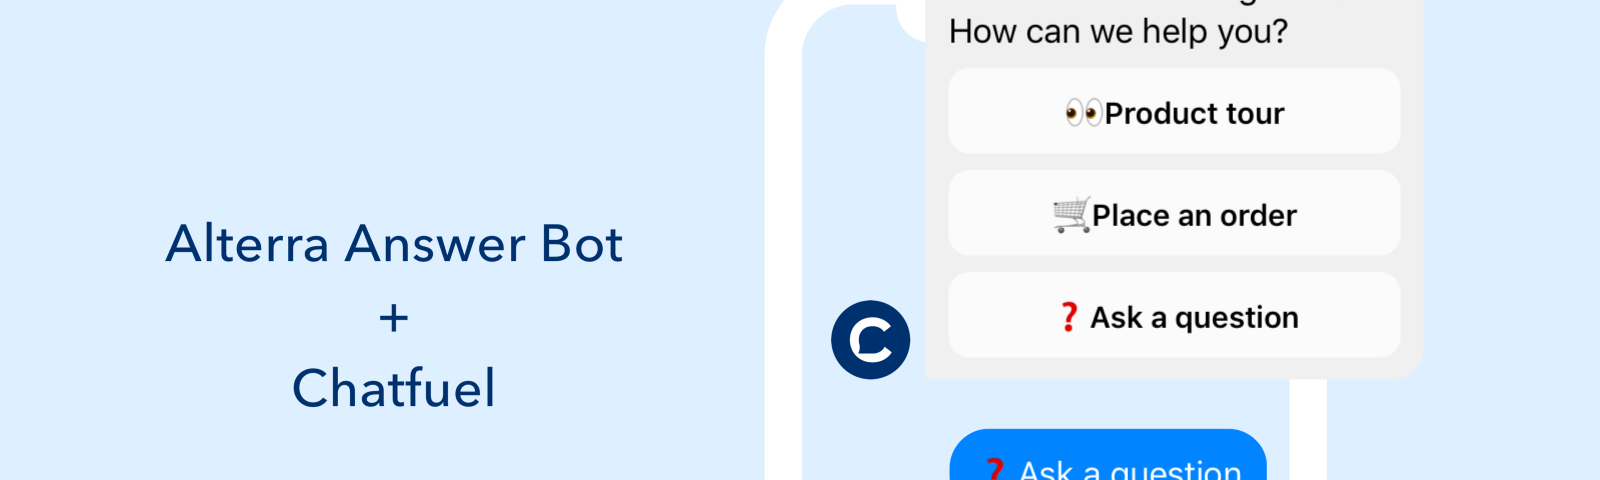 Alterra.ai— Chatfuel Integration. Chatfuel guides users through a predefined path — Alterra answers free-text questions.